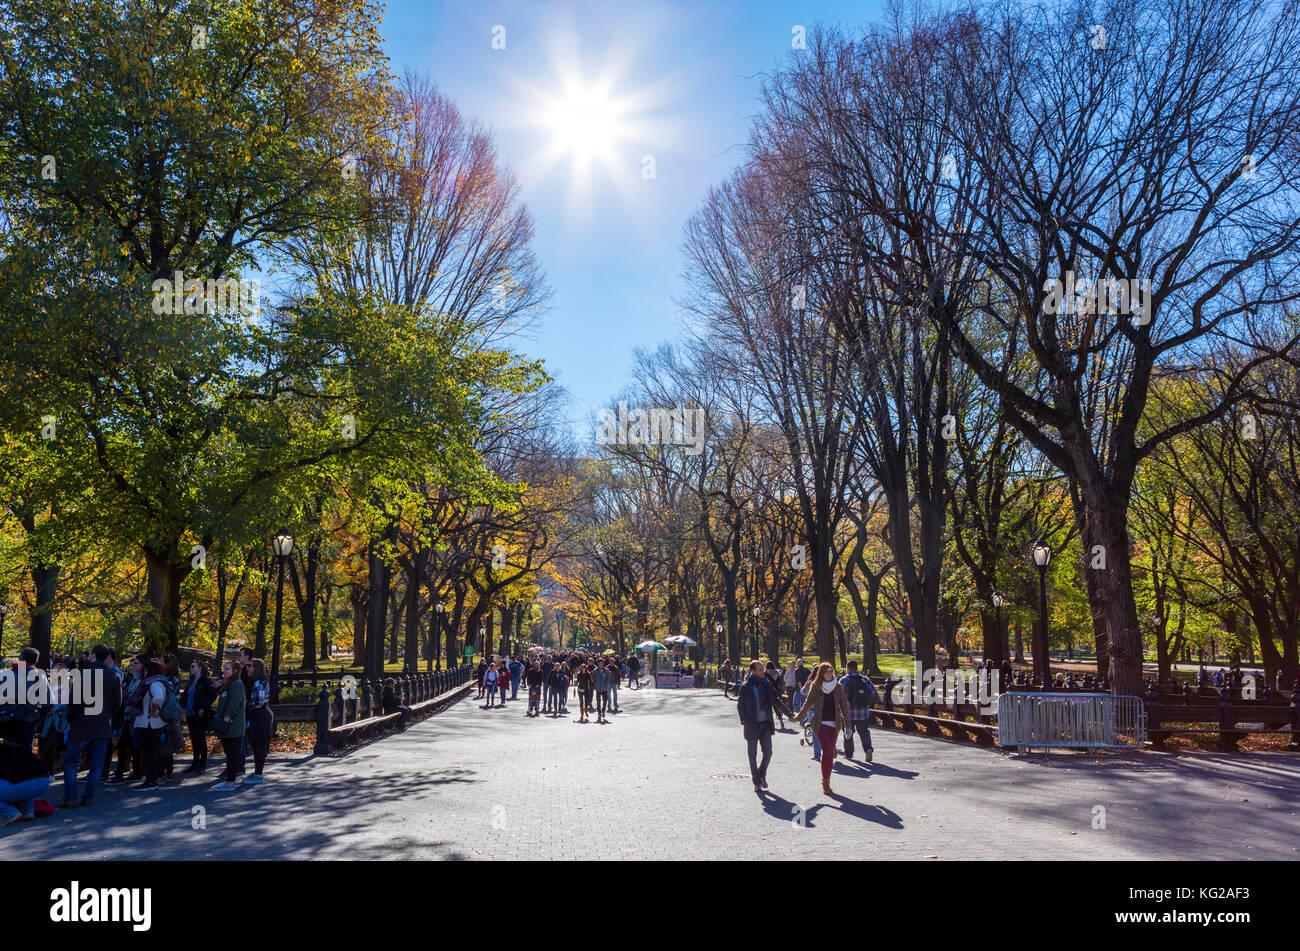 The Mall, Central Park, New York City, NY, USA - Stock Image